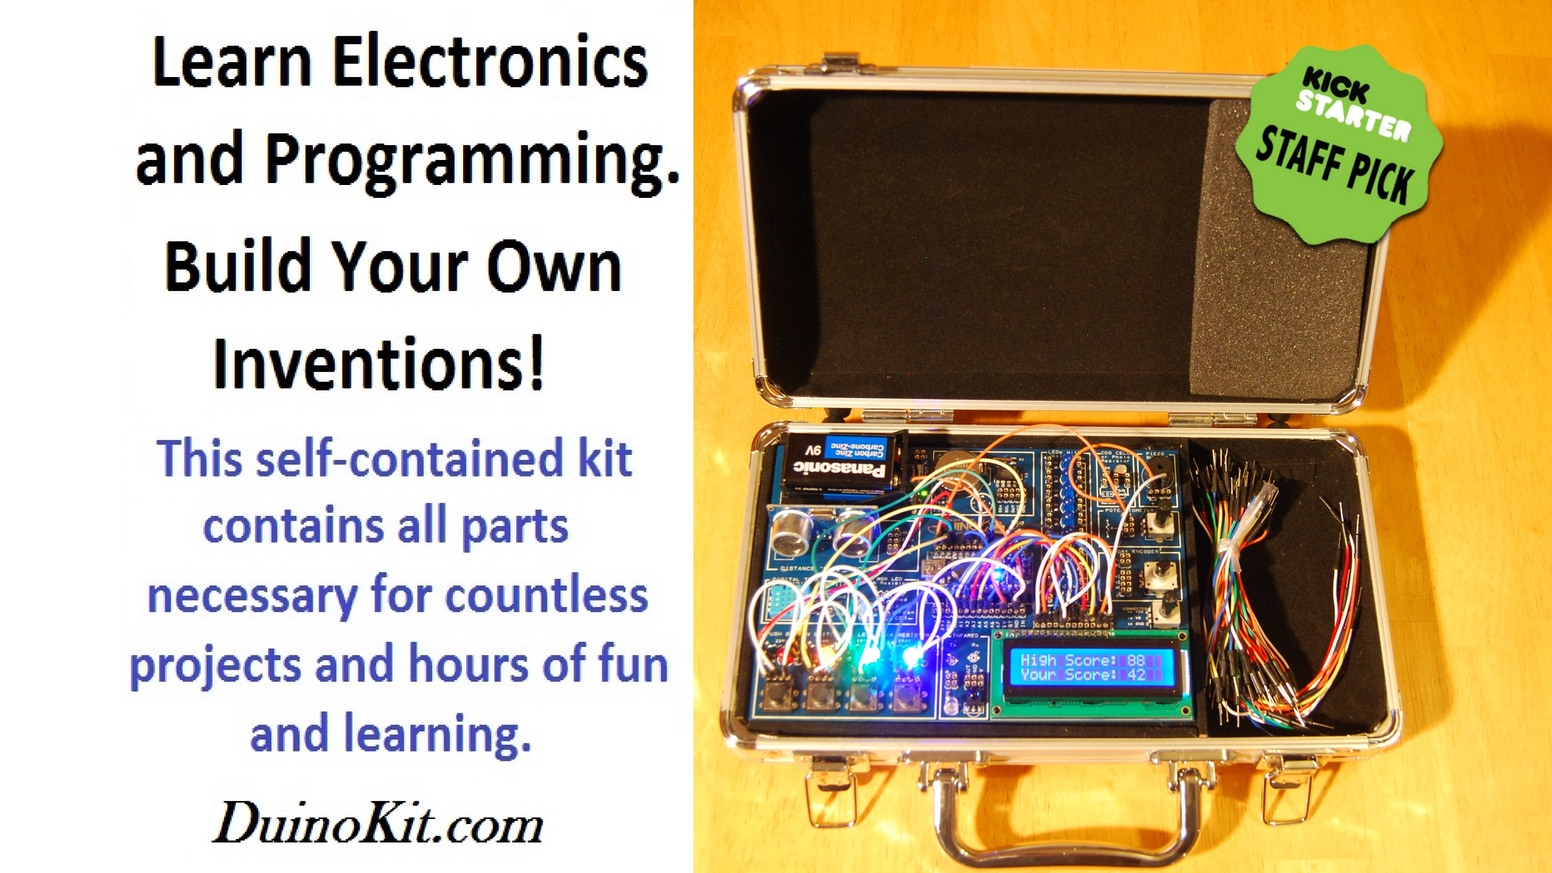 The DuinoKit Jr. is a user-friendly system to learn electronics and programming without soldering or requiring prior experience. www.DuinoKit.com